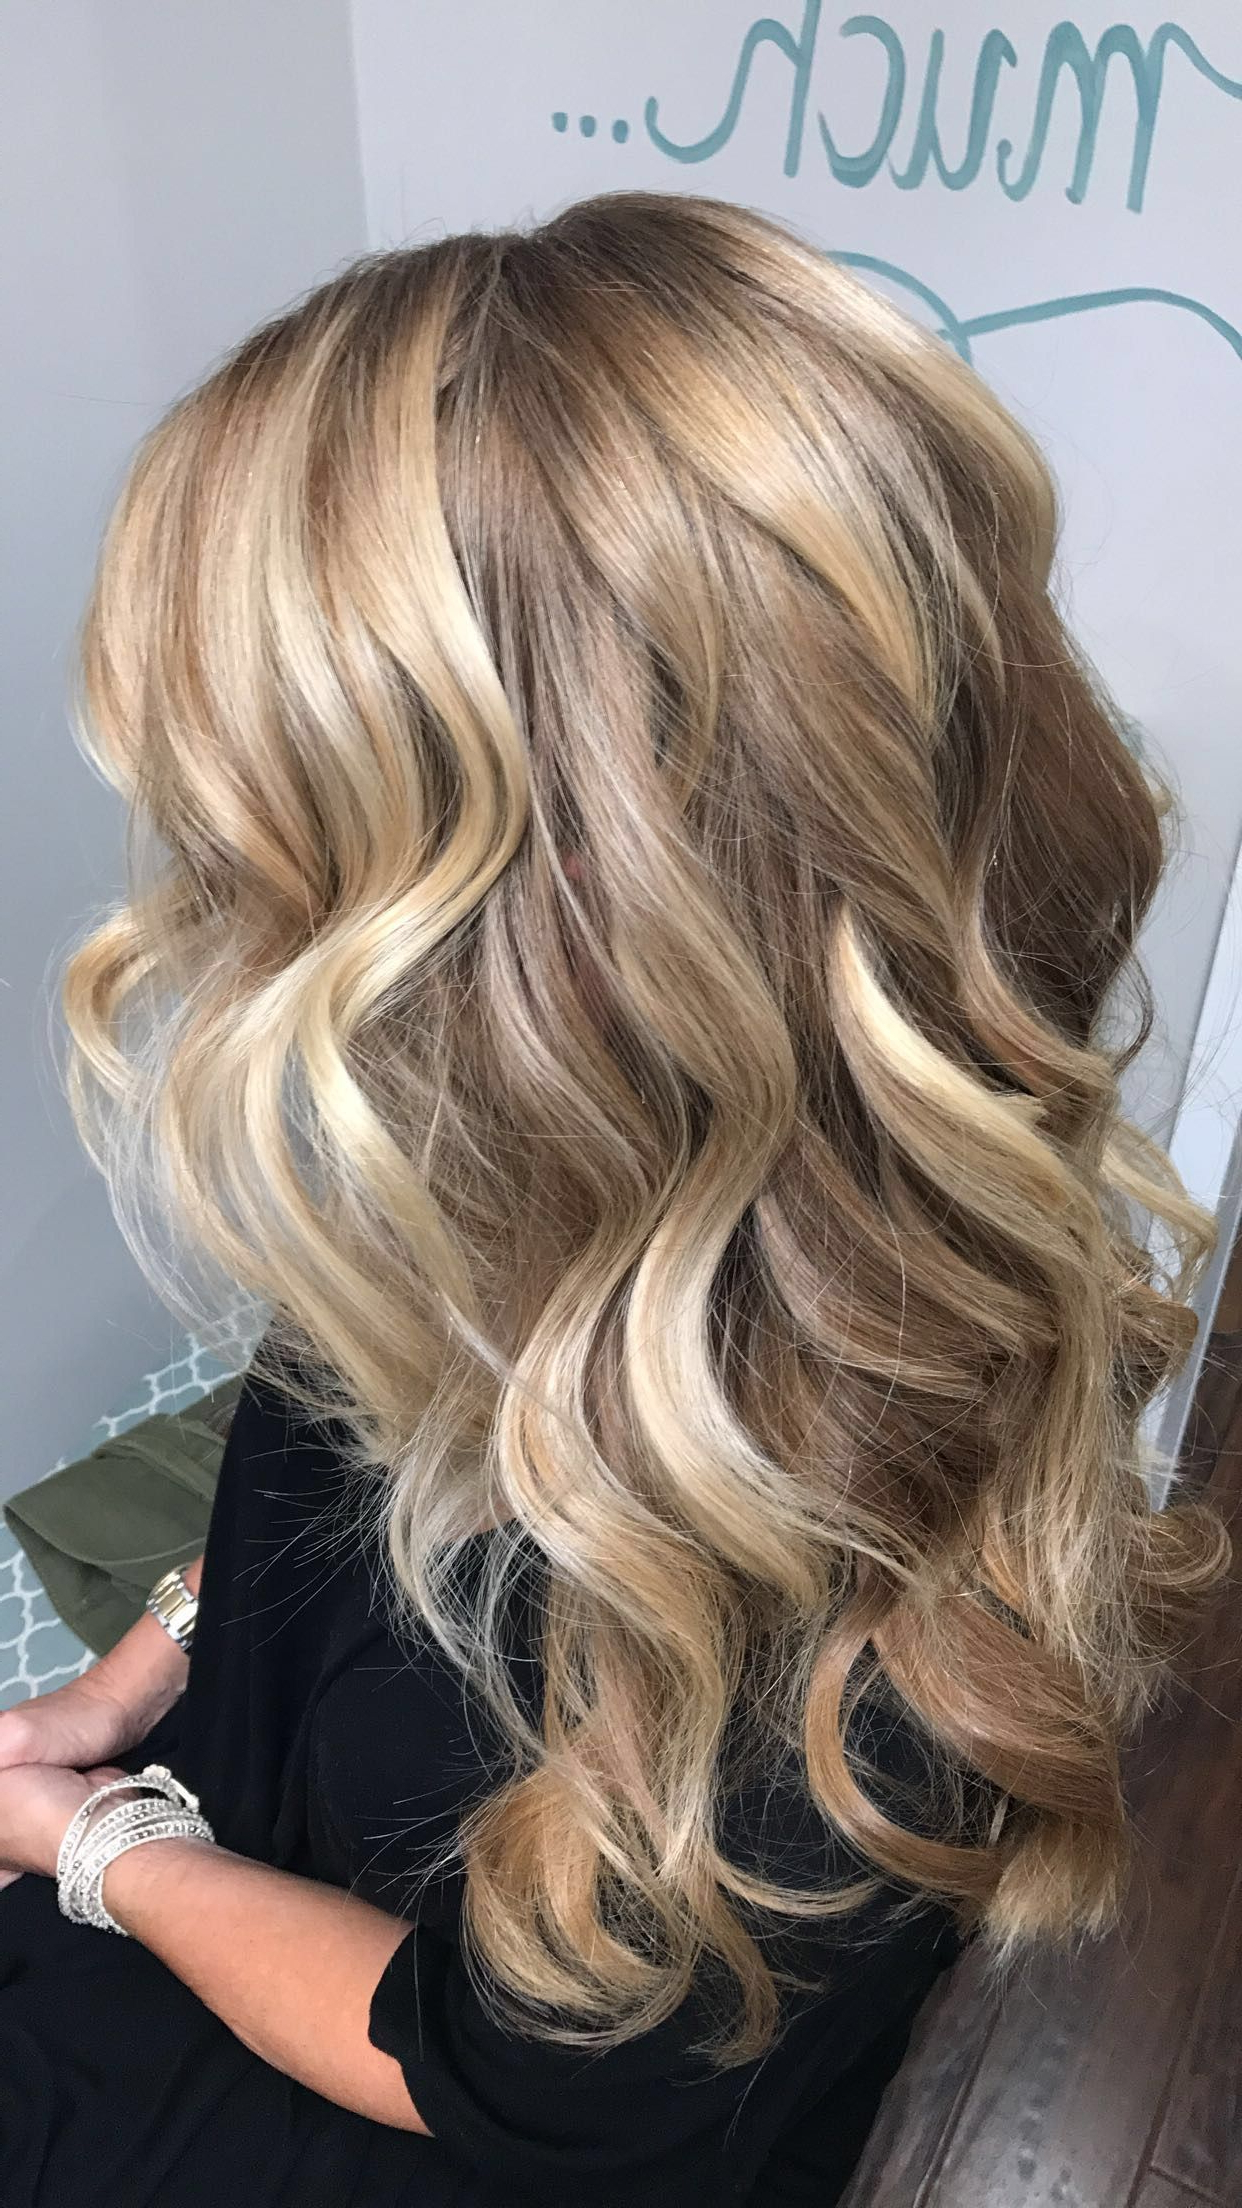 Blonde Balayage, Long Hair Styles, Balayage For Most Current Golden Blonde Balayage On Long Curls Hairstyles (View 2 of 20)